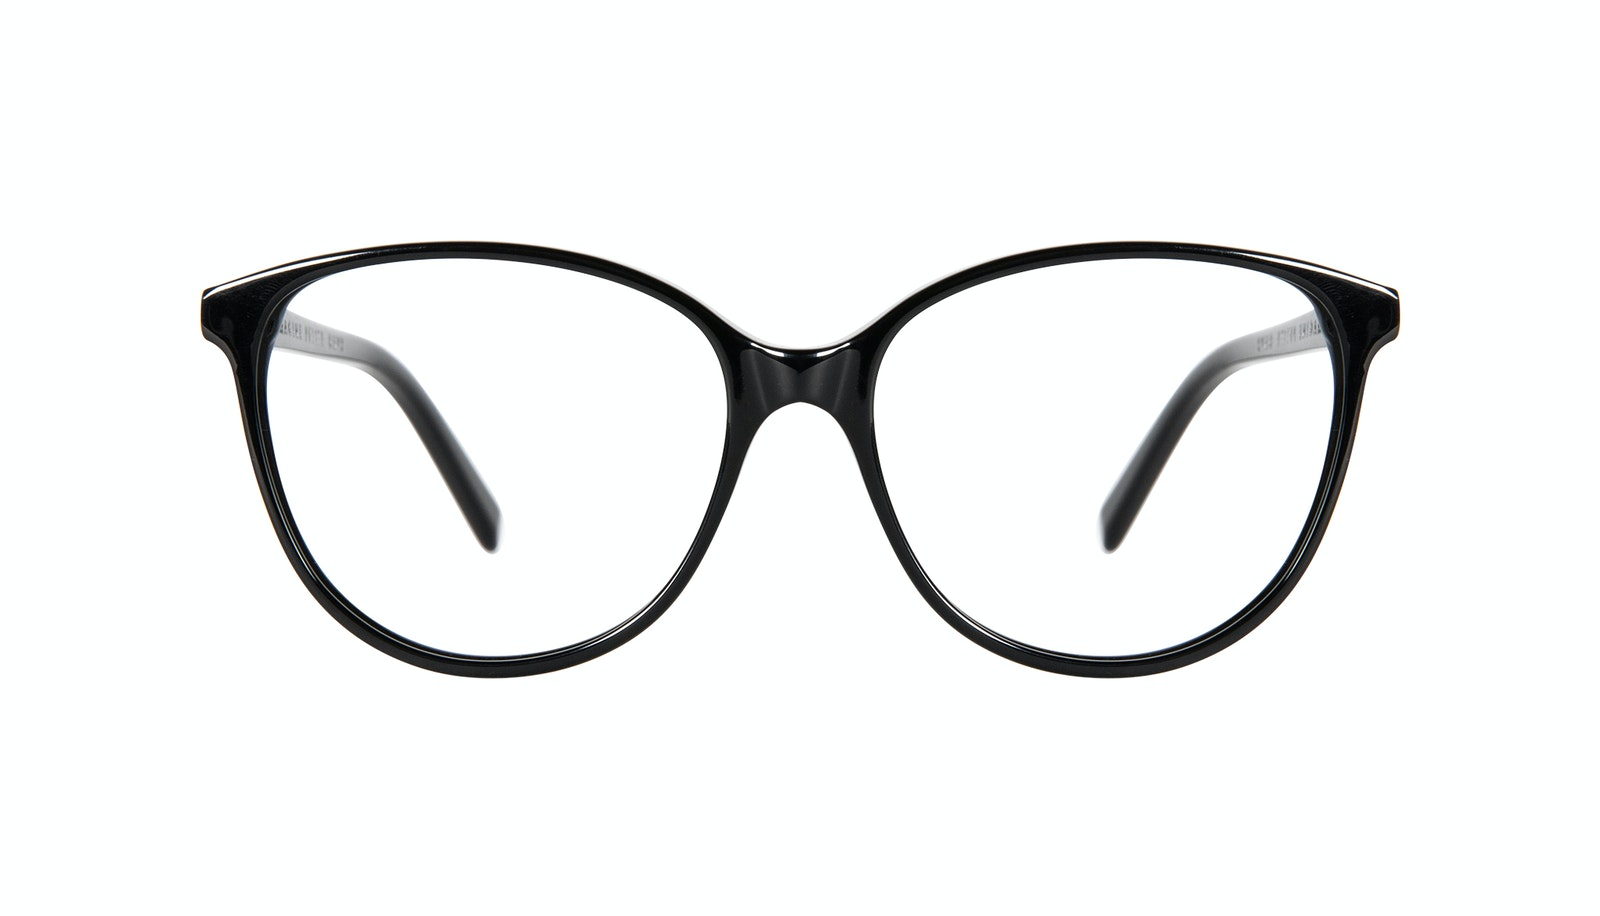 Affordable Fashion Glasses Round Eyeglasses Women Imagine Petite Onyx